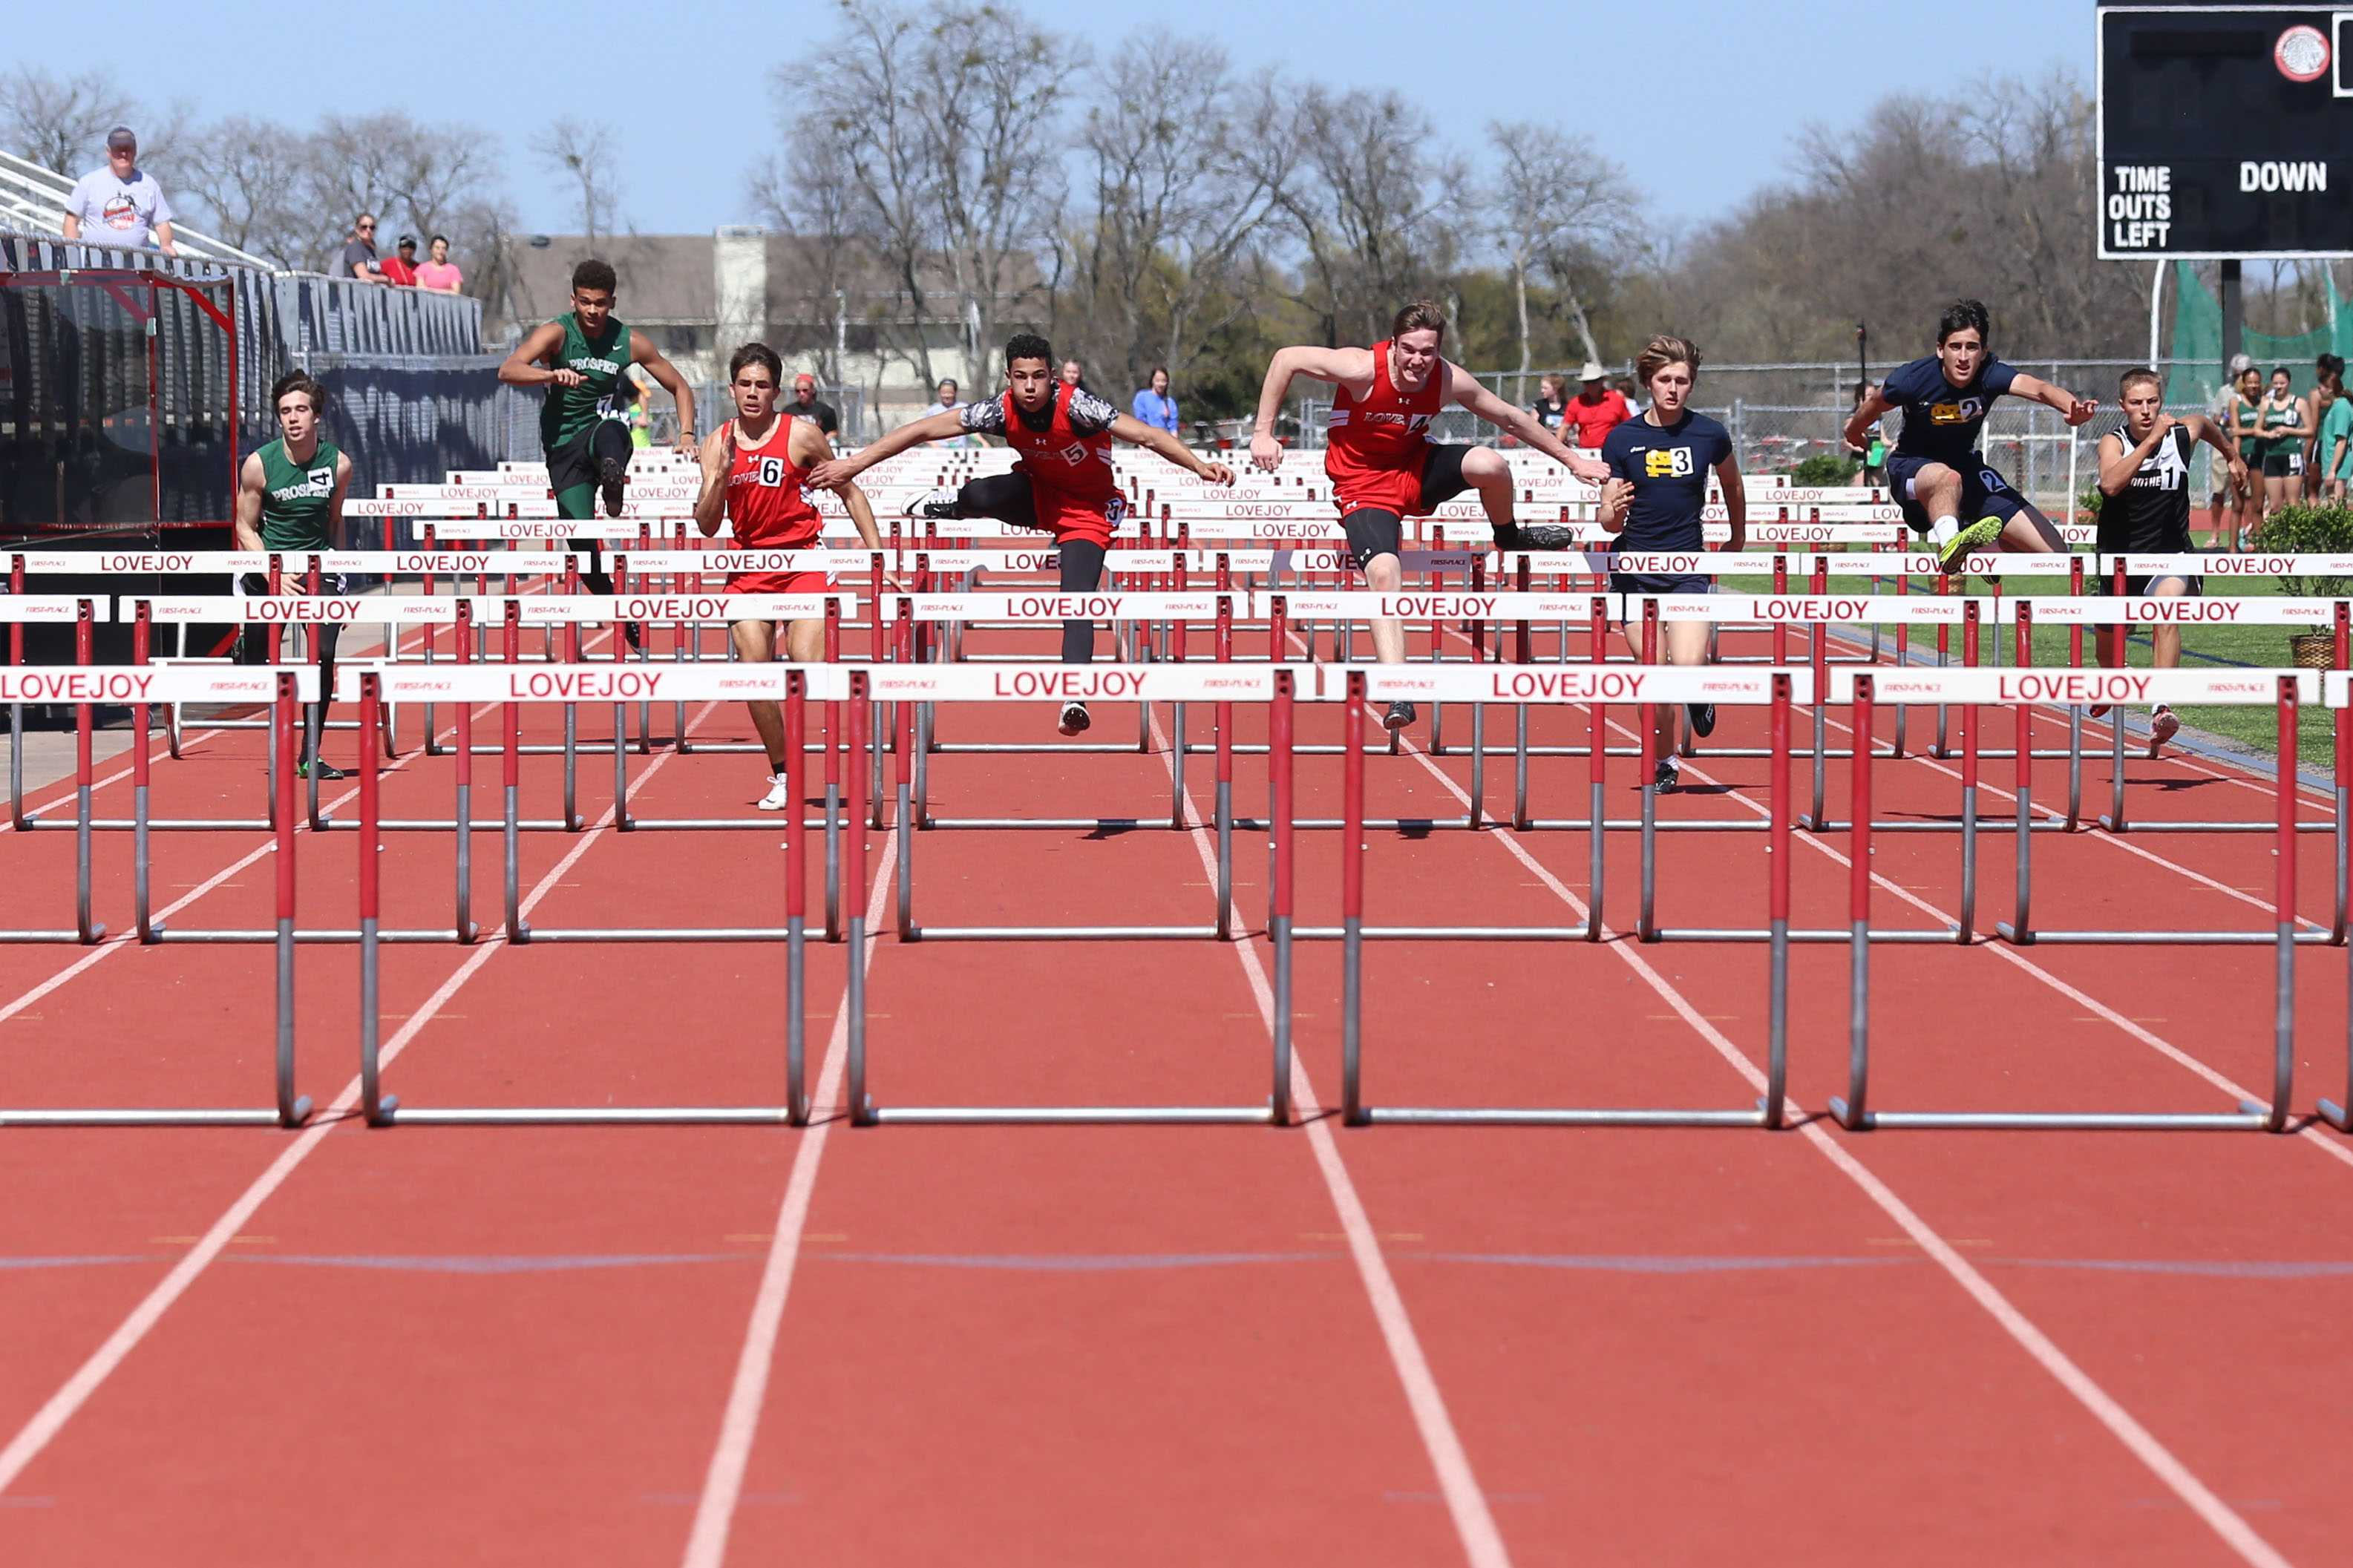 Neck and neck with Tyler Van-Wagoner (5), sophomore Reece Field (4) comes over the hurdle. Field placed first in the 100 meter hurdles with Van-Wagoner coming in just .02 seconds behind, placing second. Blake Pfaff, also pictured came in fourth.